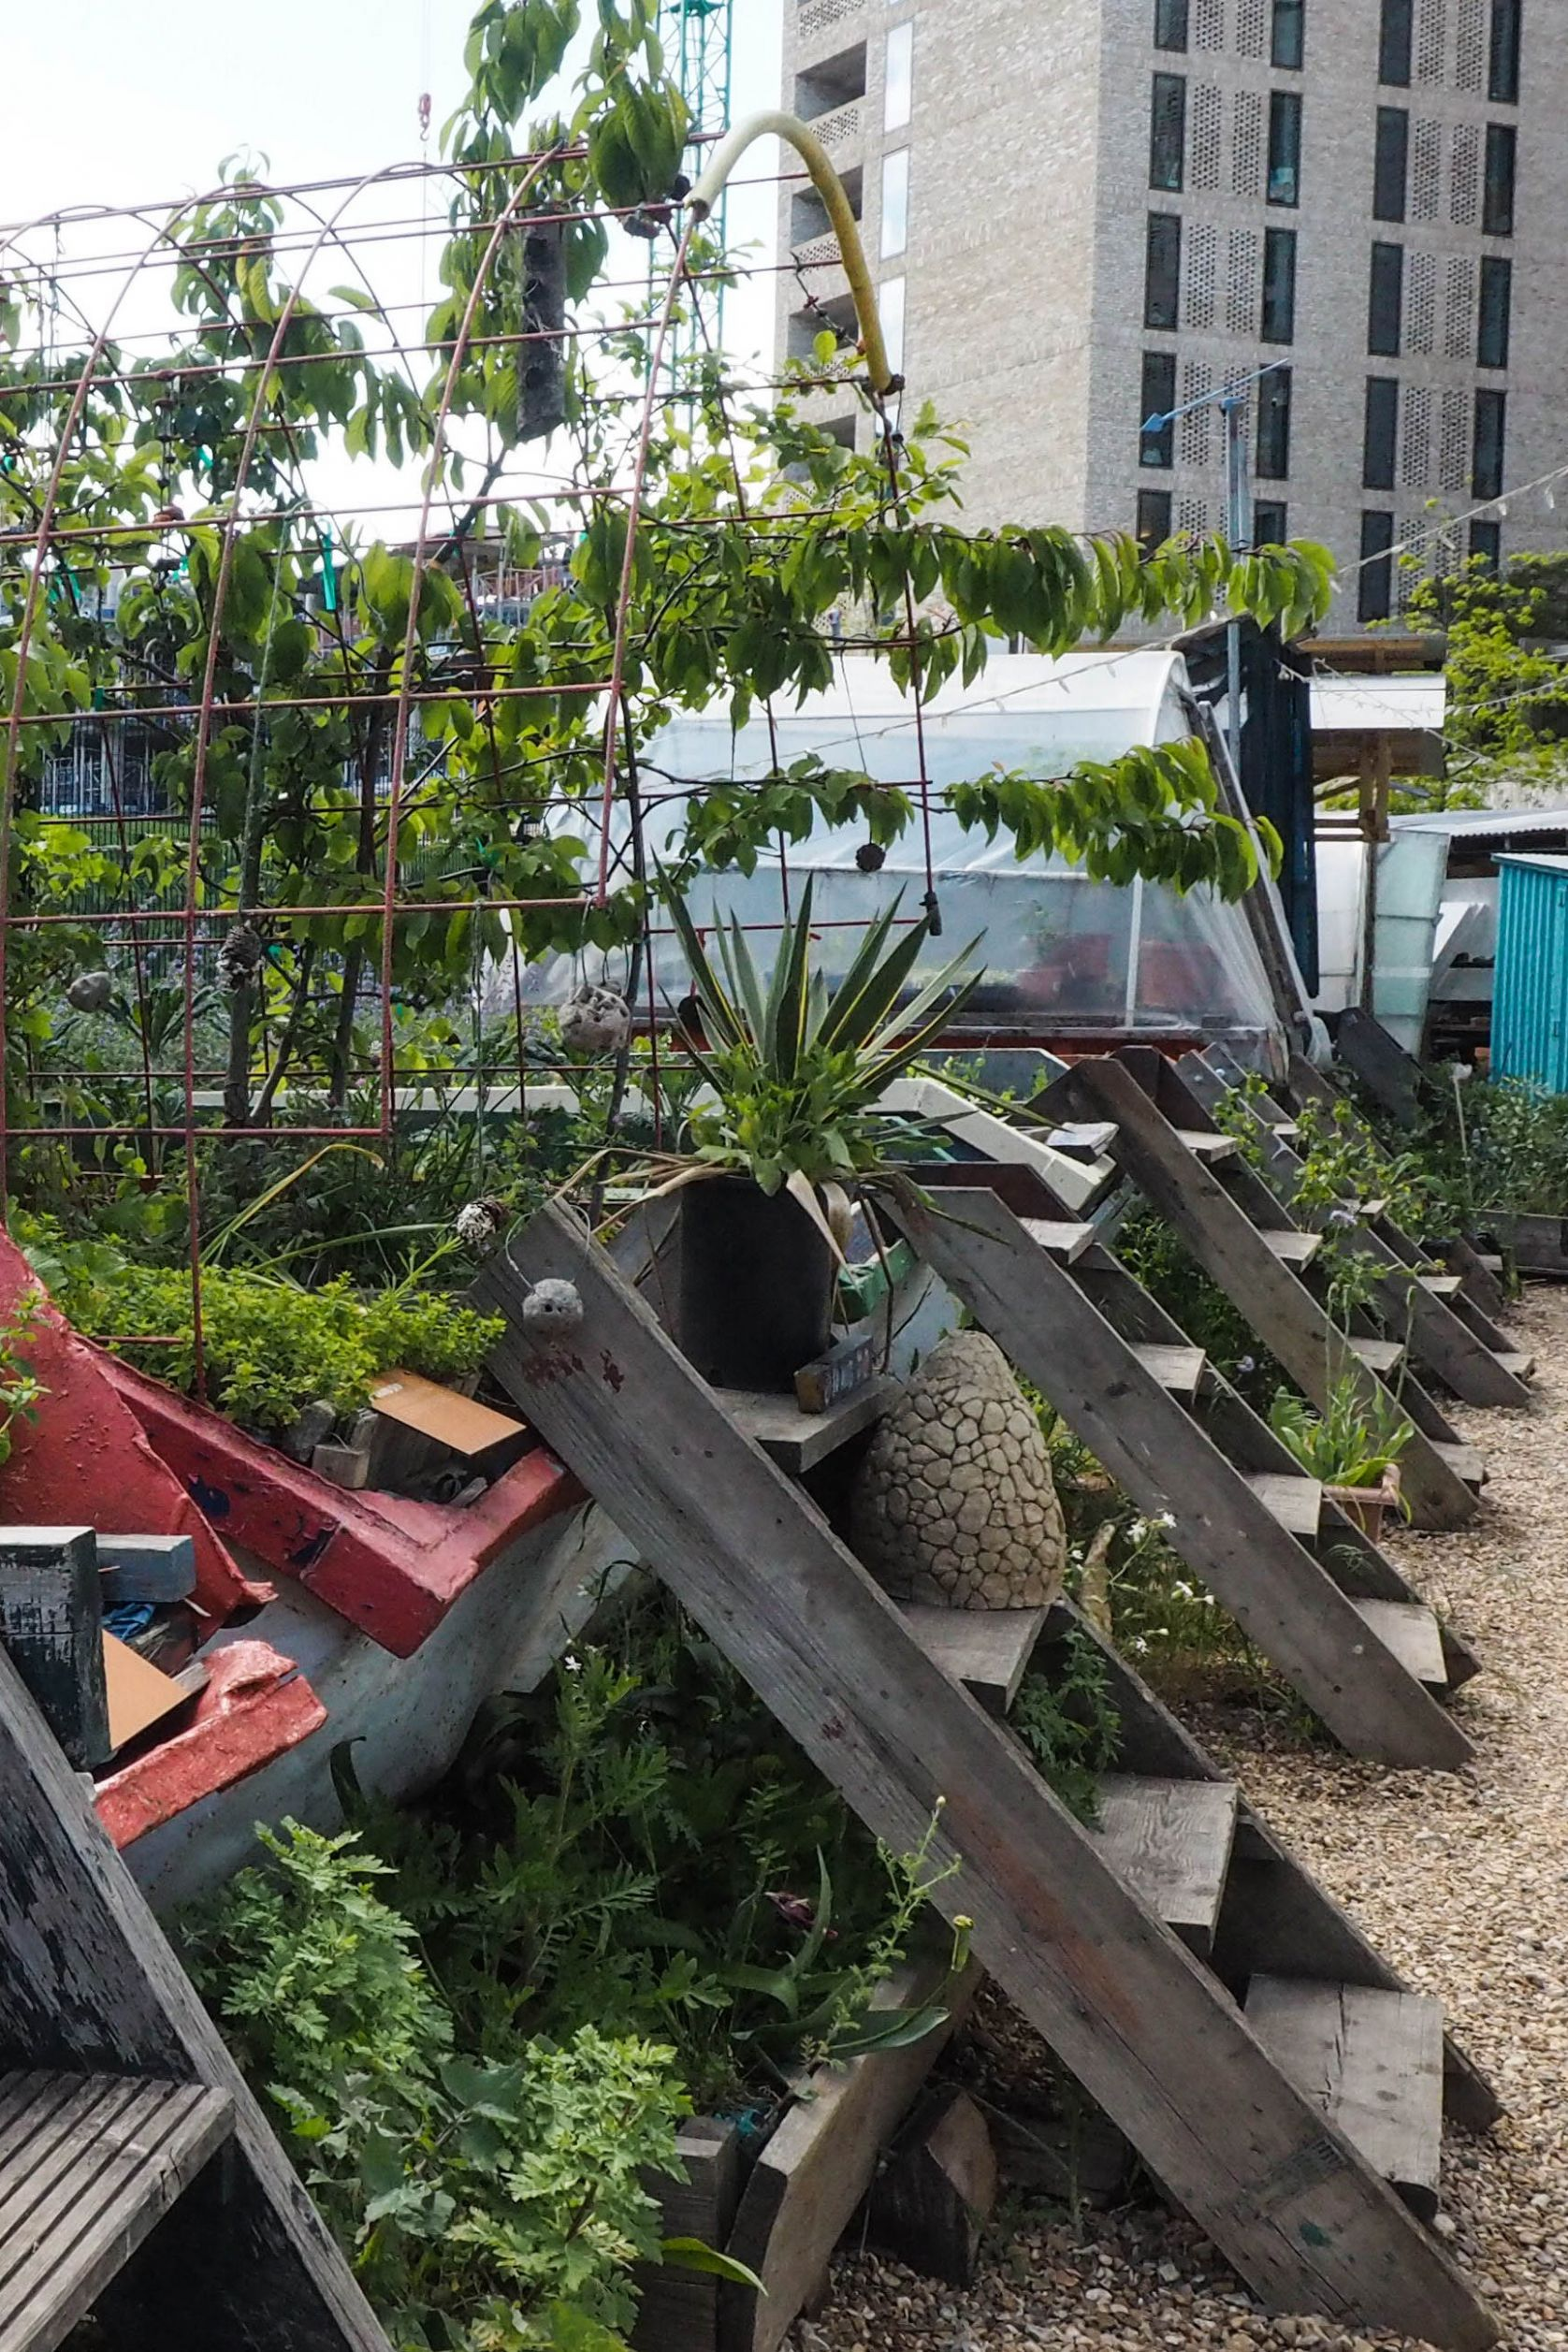 10 inspiring city garden ideas from London - The Middle-Sized ...